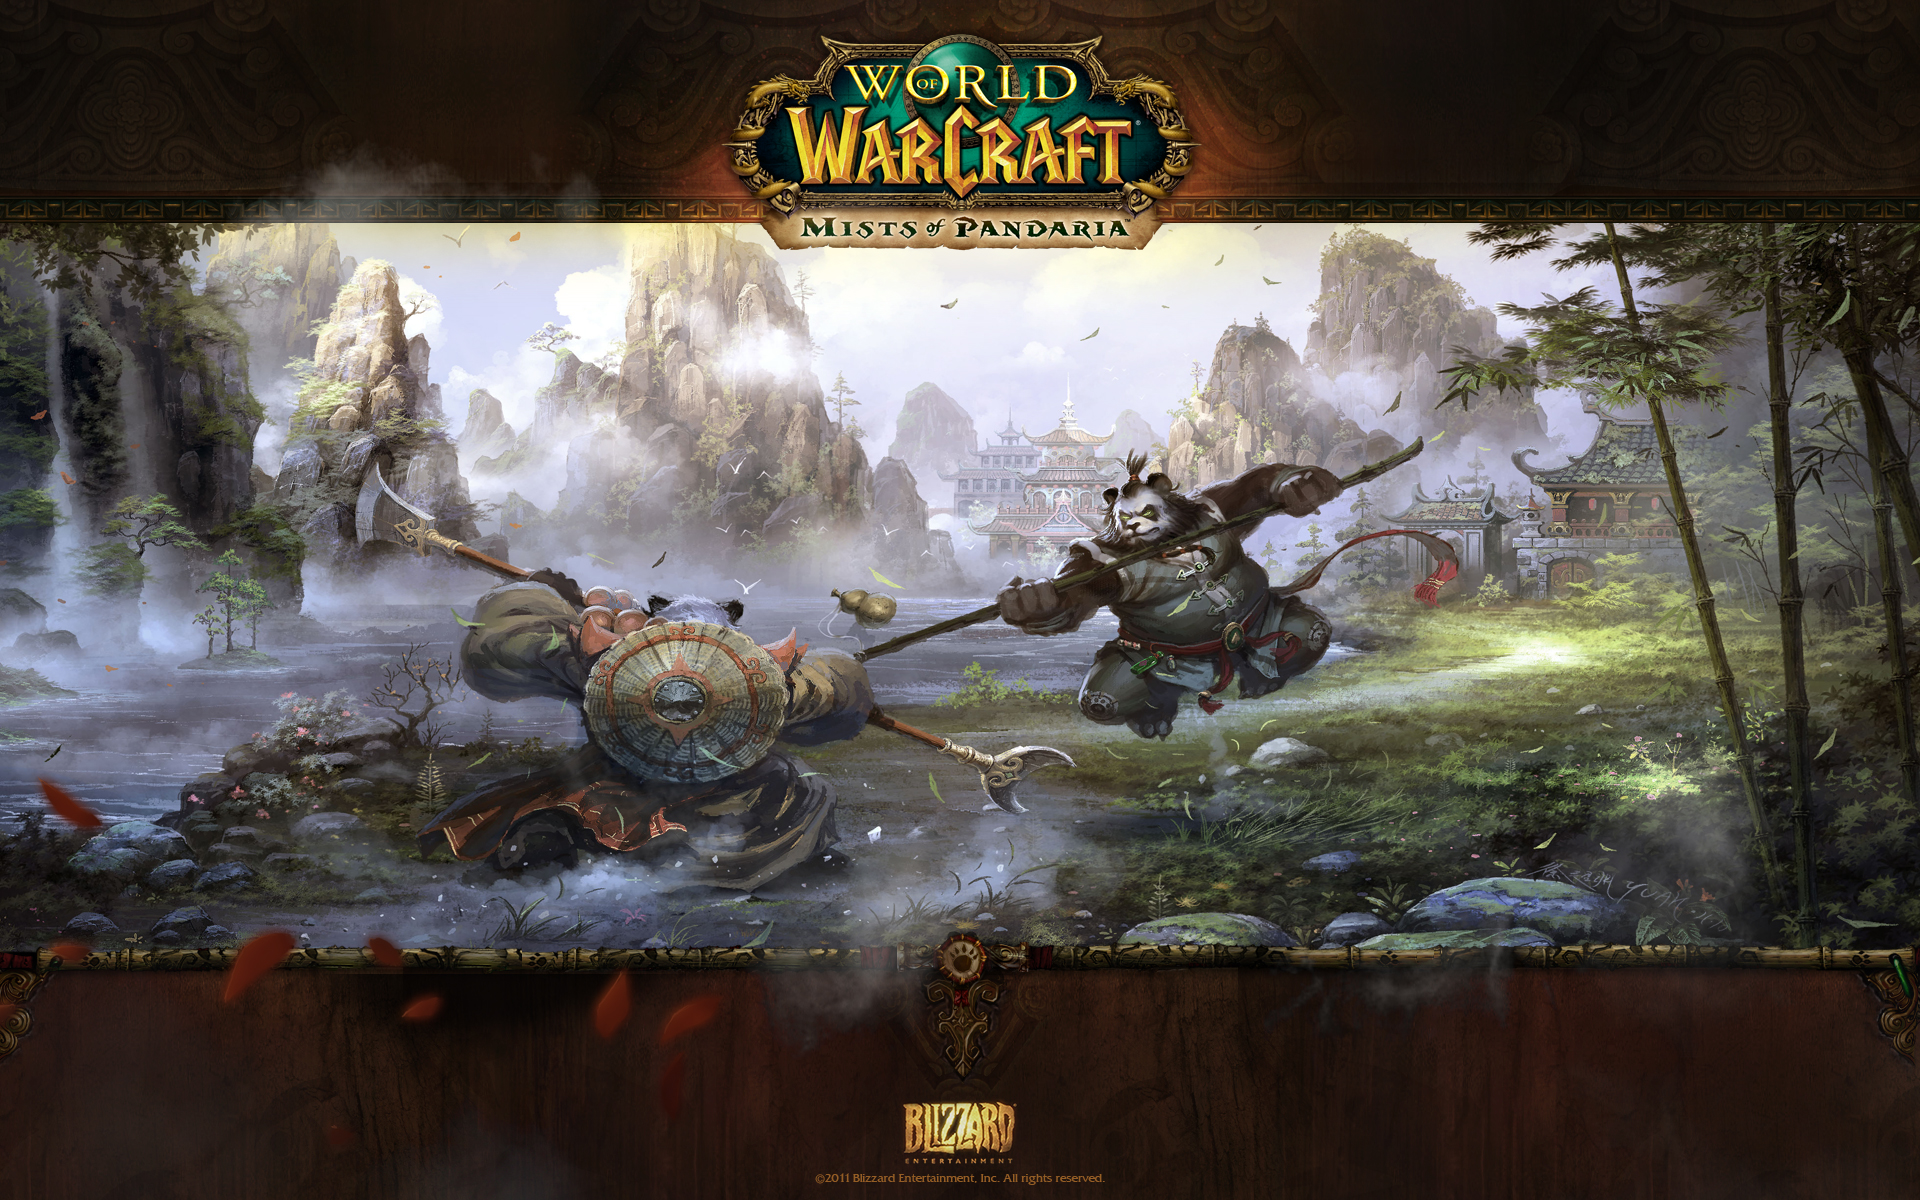 World of warcraft addons wotlk | Guide in building